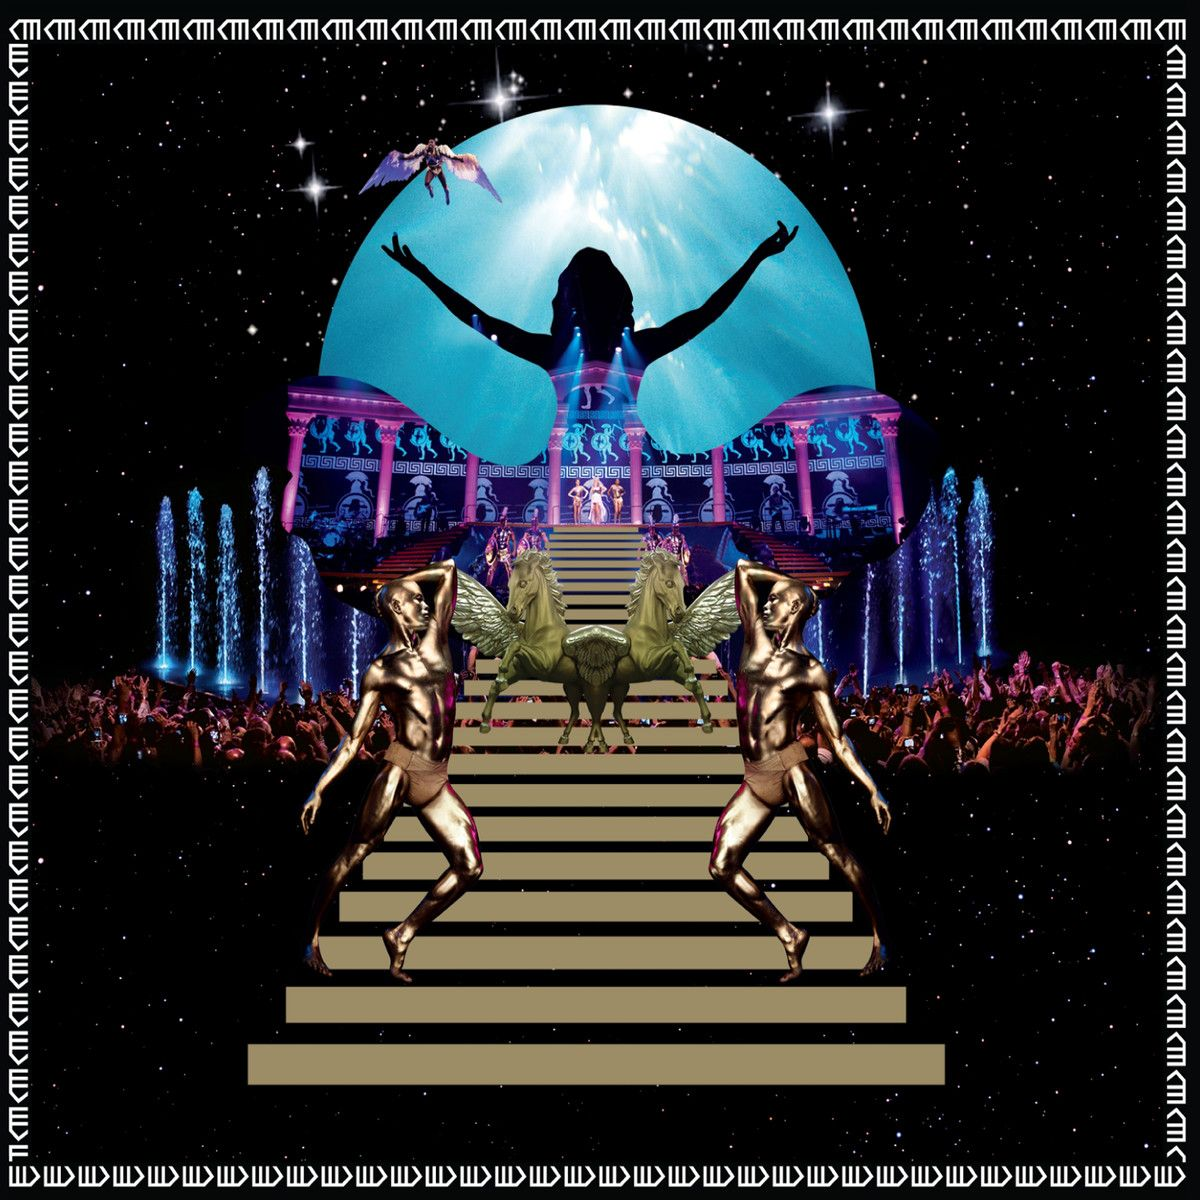 Kylie Minogue - Aphrodite Les Folies - Live In London album cover